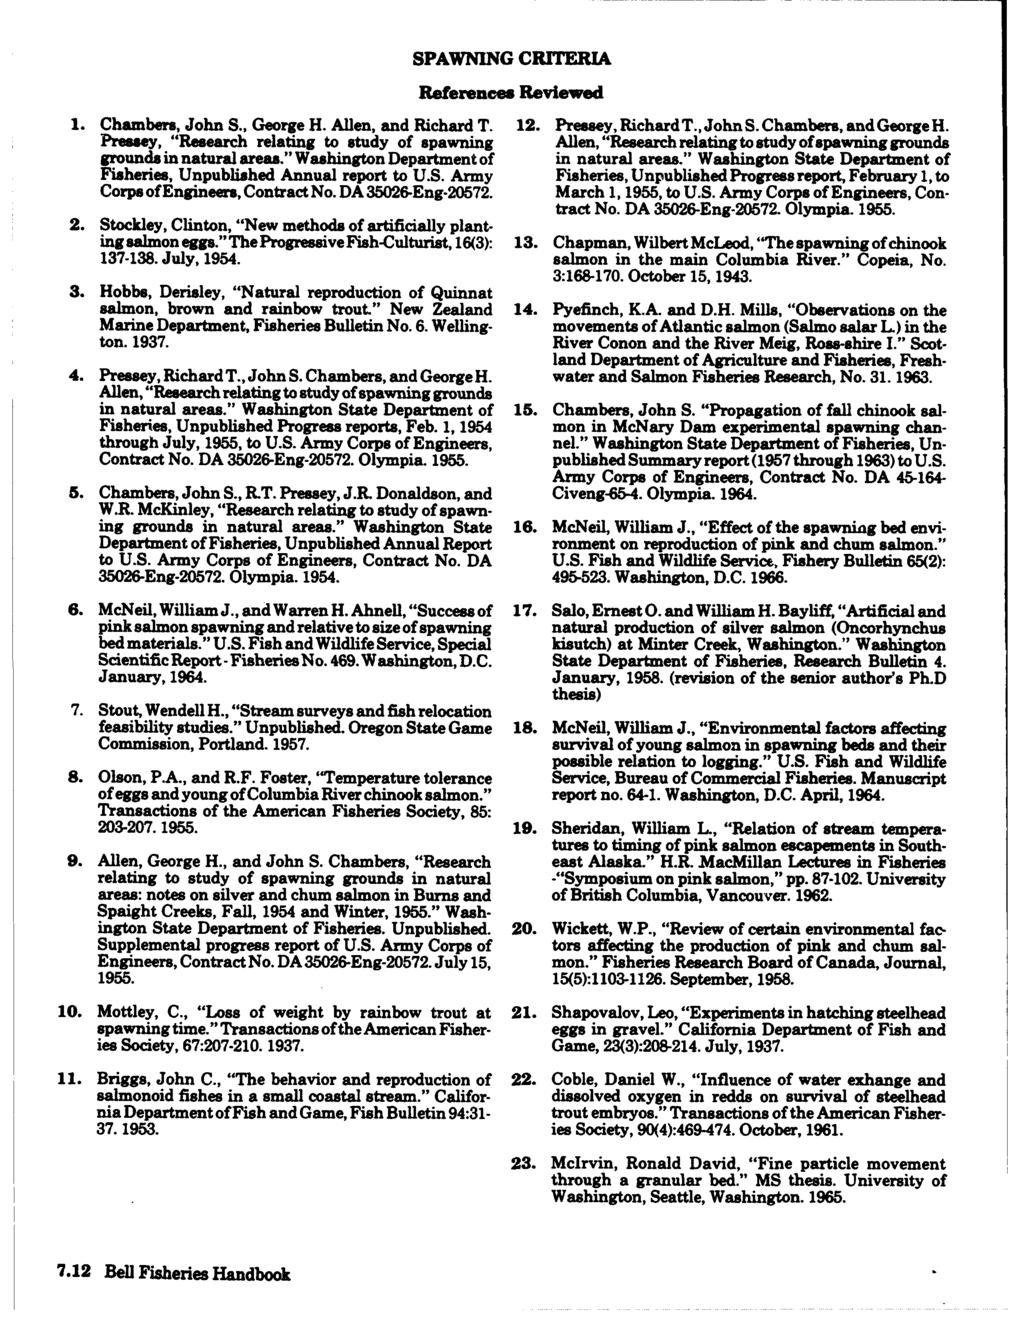 SPAWNING CRITERIA References Reviewed 1. Chambers, John S., George H. Allen, and Richard T. 12. Premey, RichardT., John S. Chambers, andgeorge H.